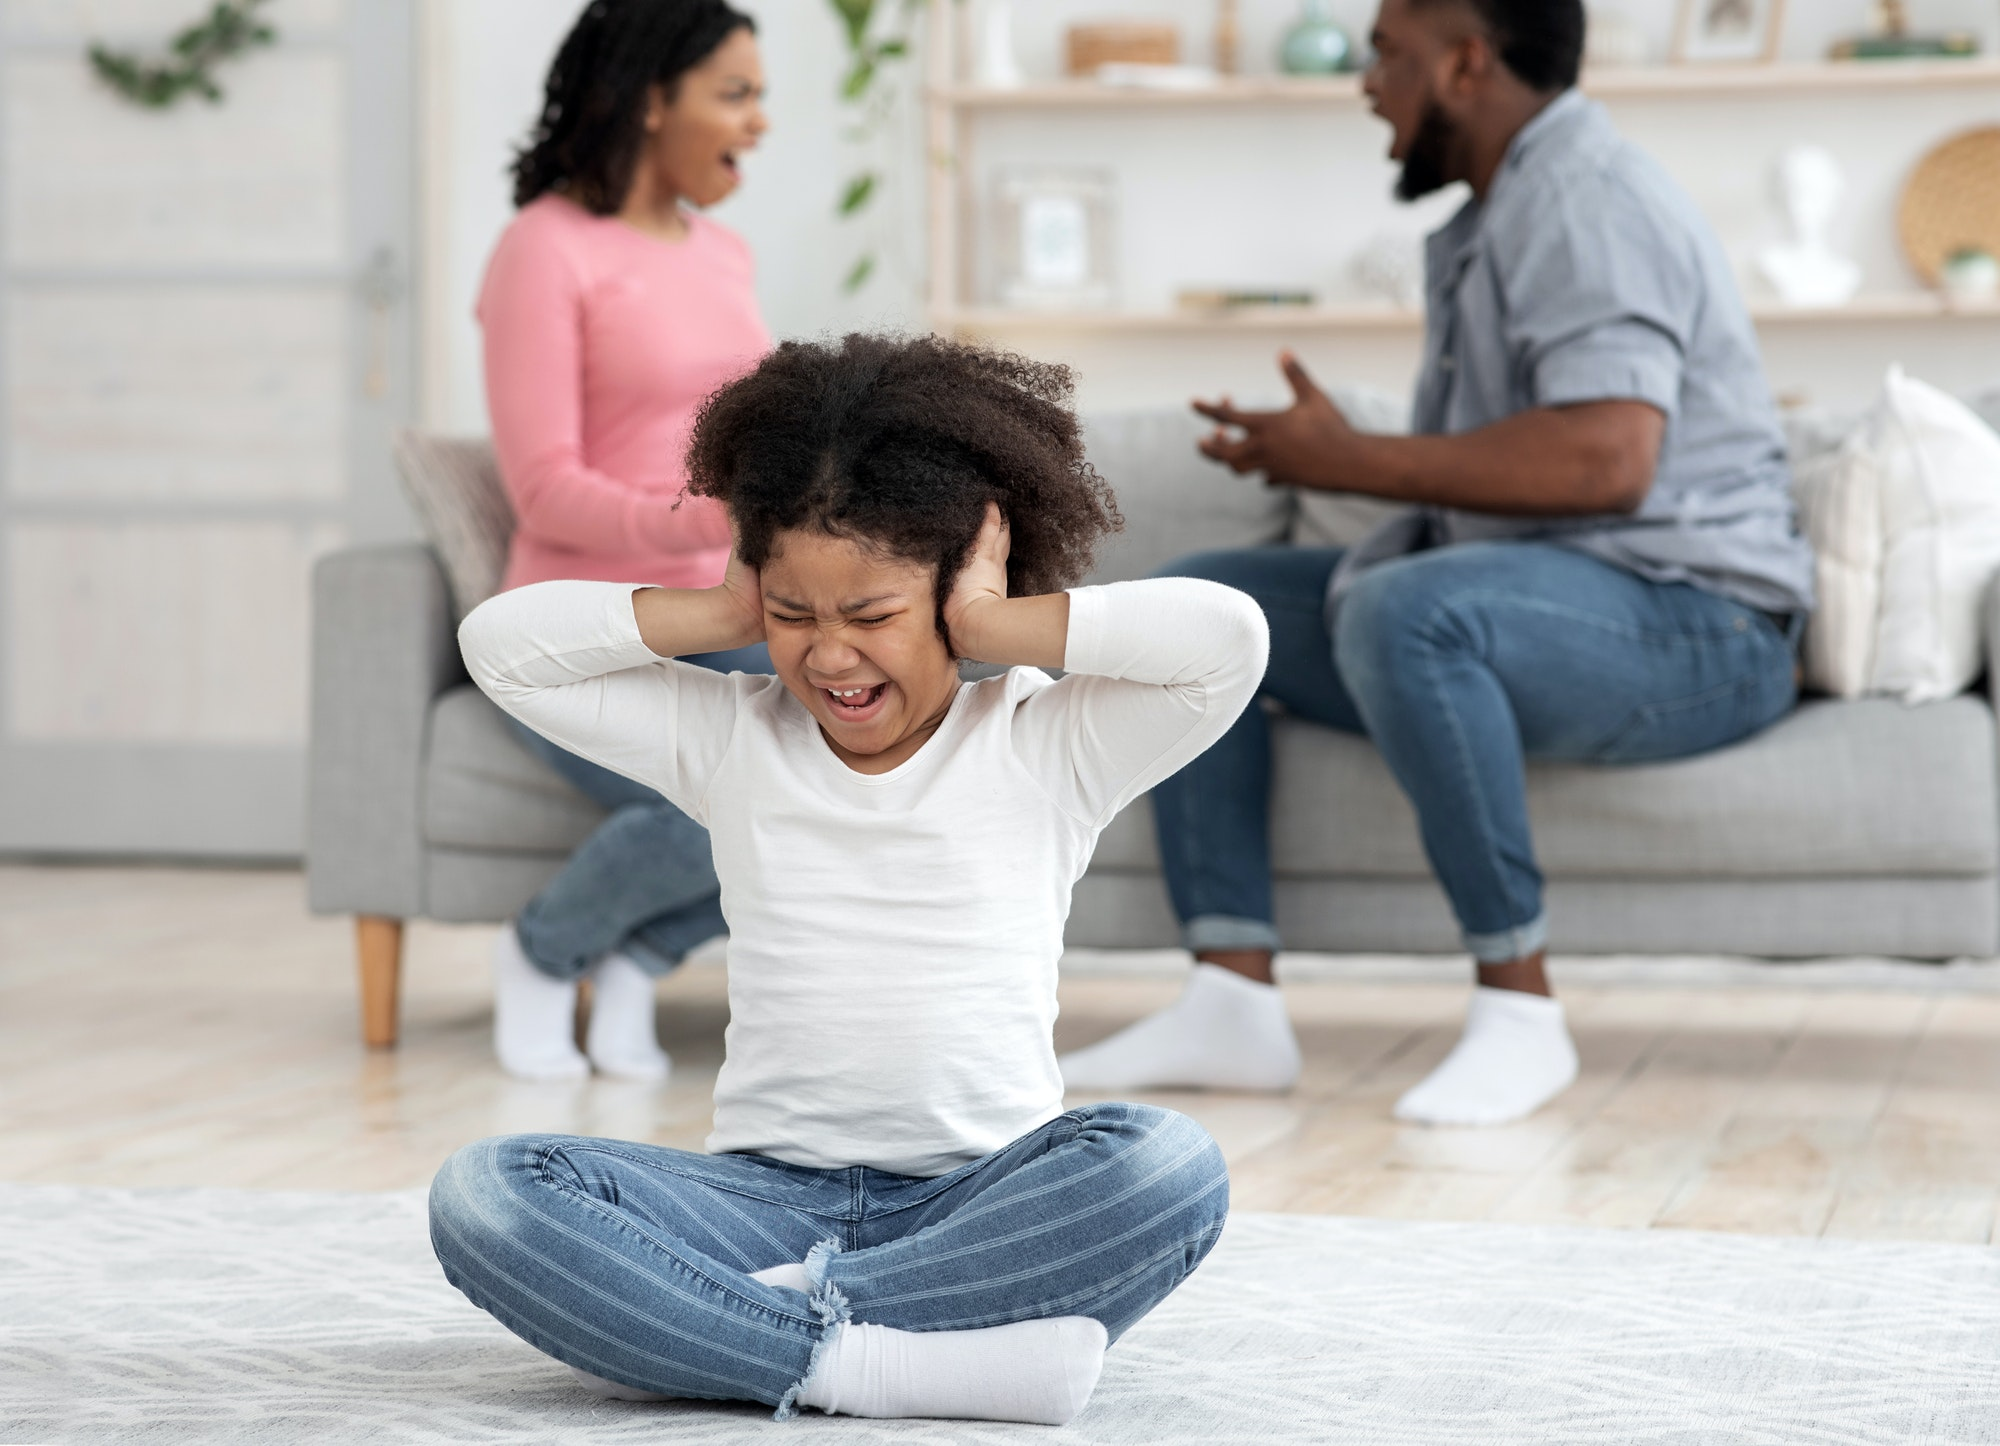 Childhood Traumas. Little Black Girl Covering Ears Not To Hear Parents Quarrels